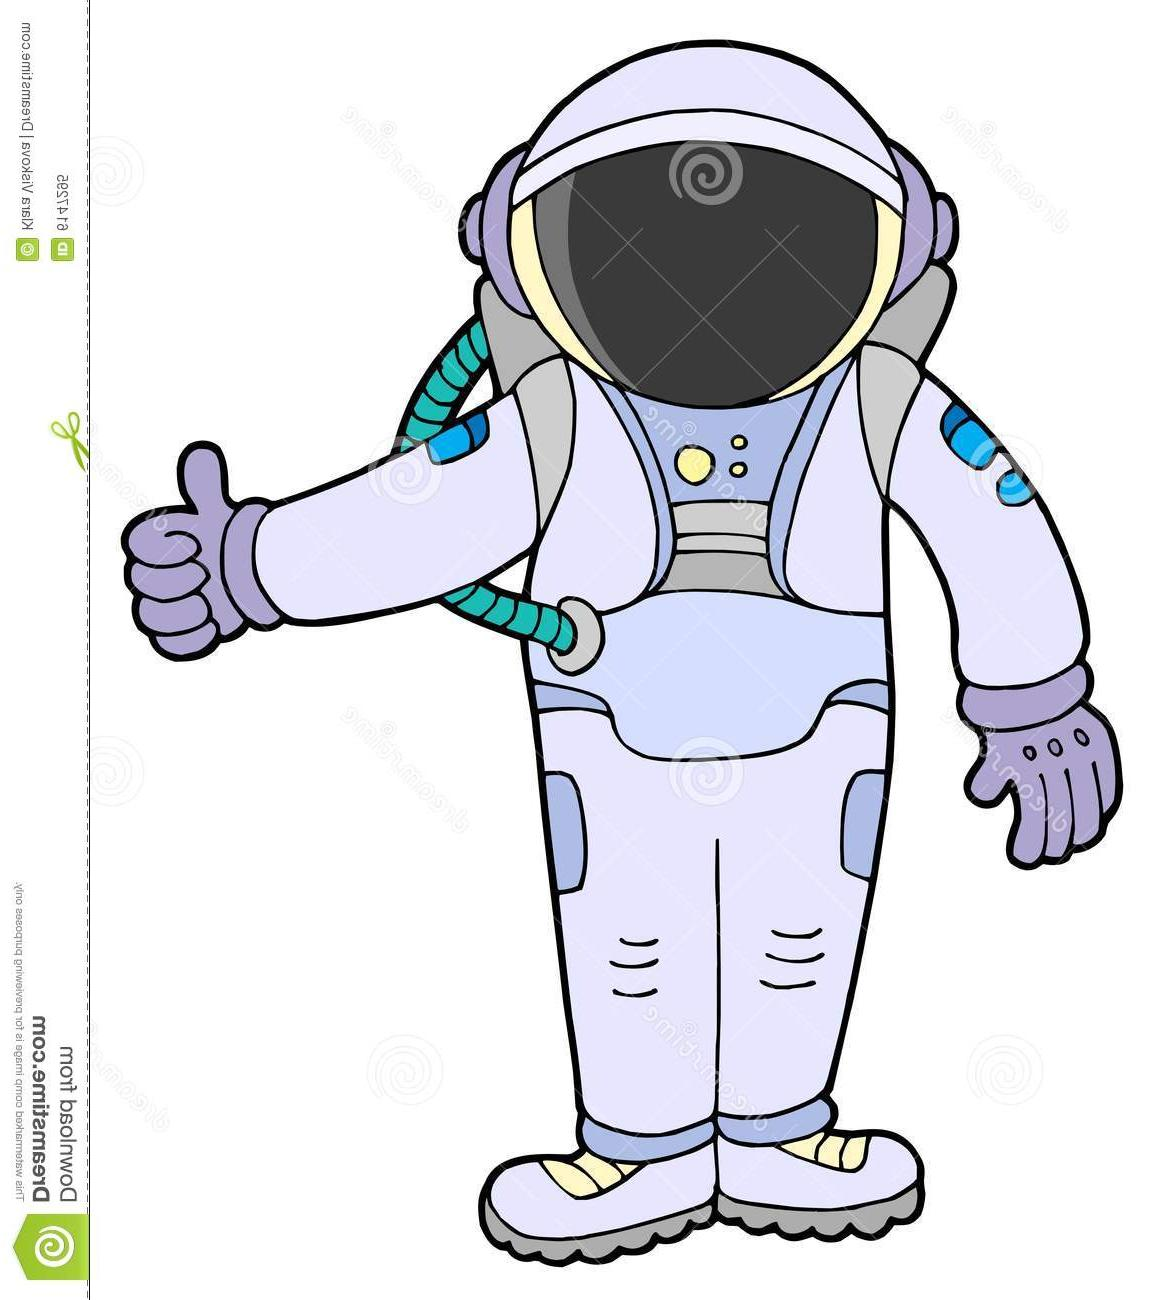 Drawn pencil and in. Astronaut clipart bear